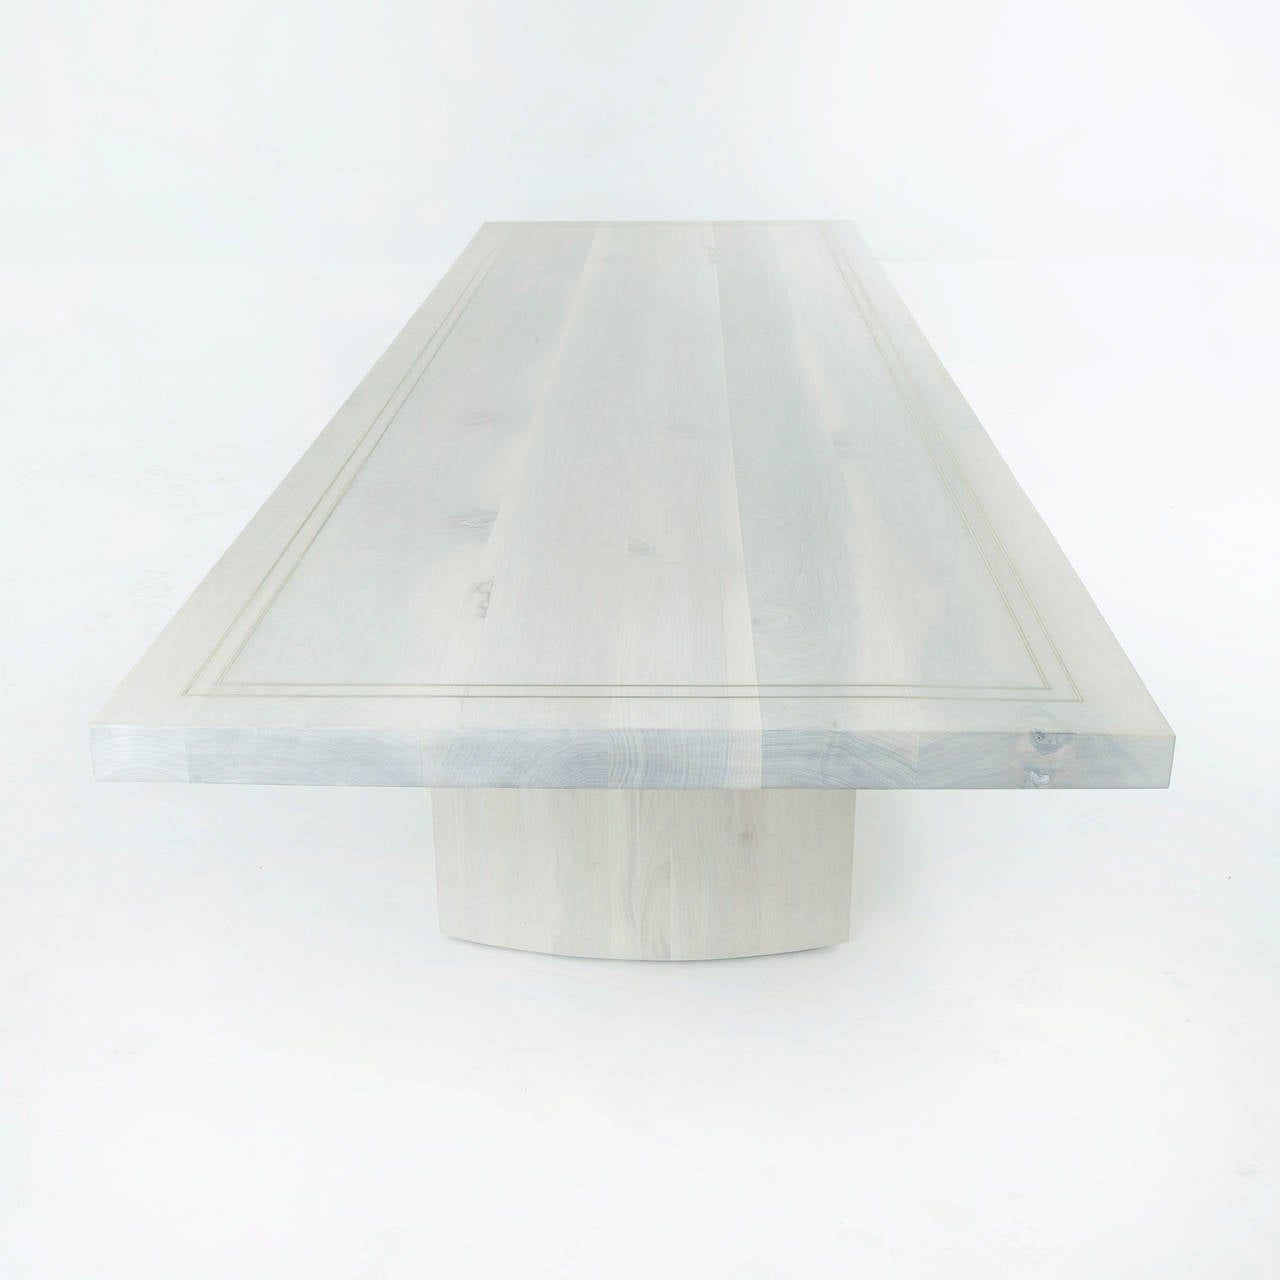 Jantar Alloy Dining Table by Thomas Hayes Studio 8